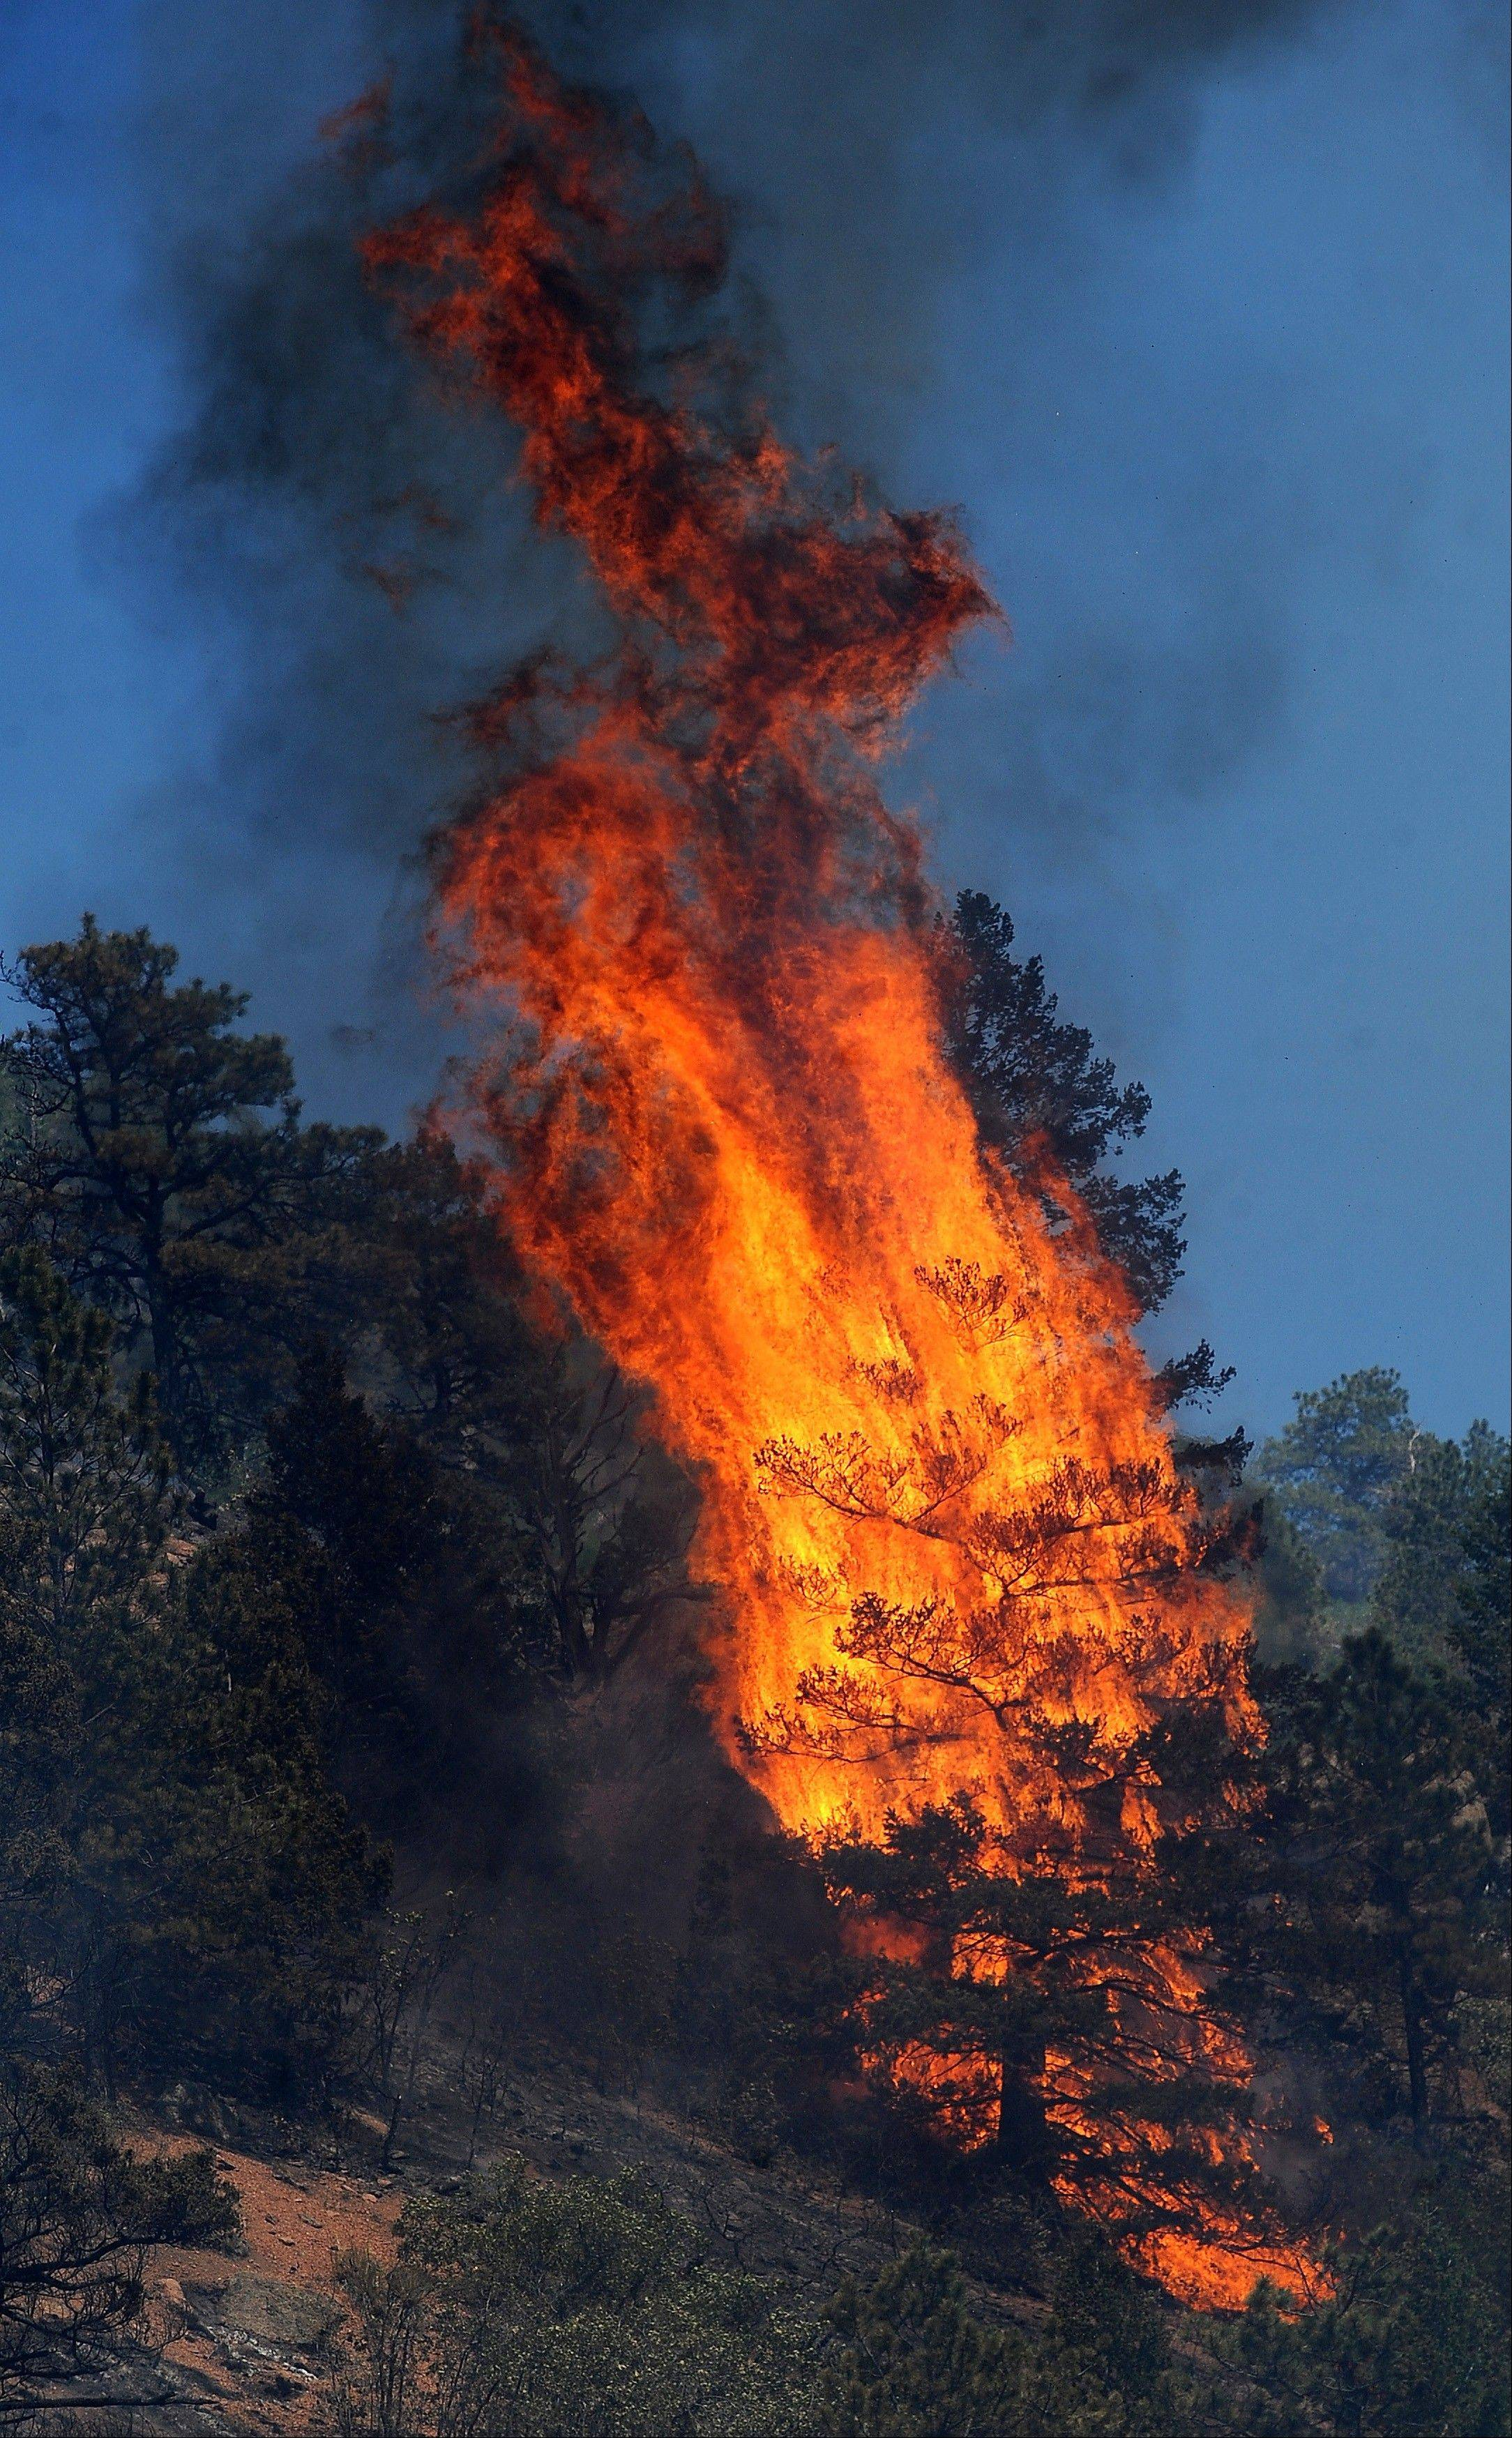 Flames consume a tree along the north side of U.S. Highway 24 near the Waldo Canyon Trailhead between Cascade, Colo., and Manitou Springs, Colo., Tuesday, June 26, 2012. Colorado has endured nearly a week of 100-plus-degree days and low humidity, sapping moisture from timber and grass, creating a devastating formula for volatile wildfires across the state and punishing conditions for firefighters.